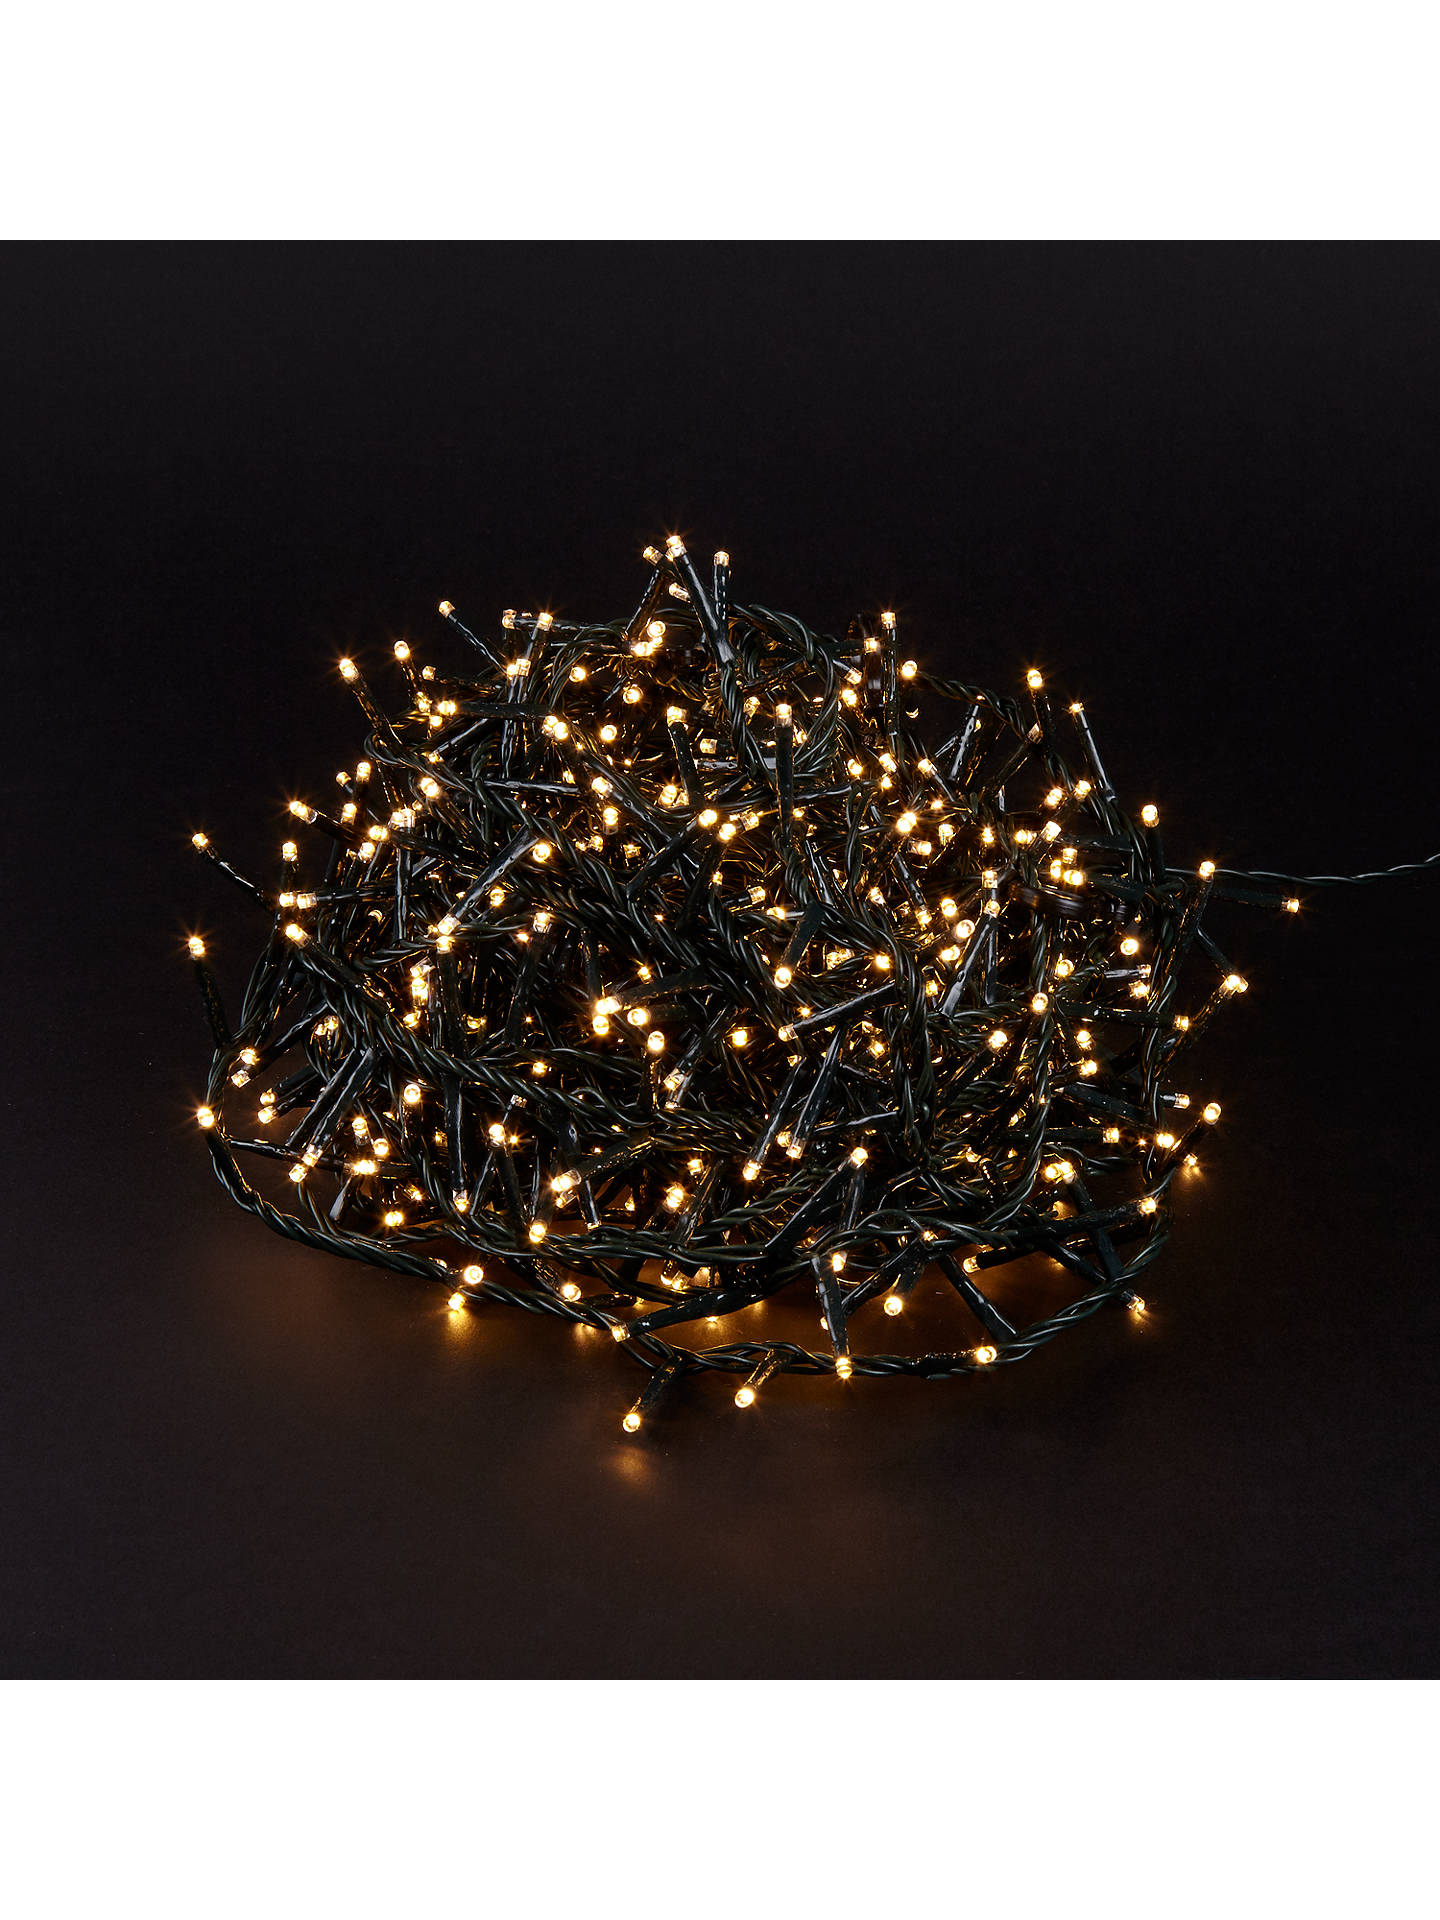 Buy1-2-Glow 700 LEDs Indoor / Outdoor Christmas Lights for 210cm Trees, Classic Soft White Online at johnlewis.com